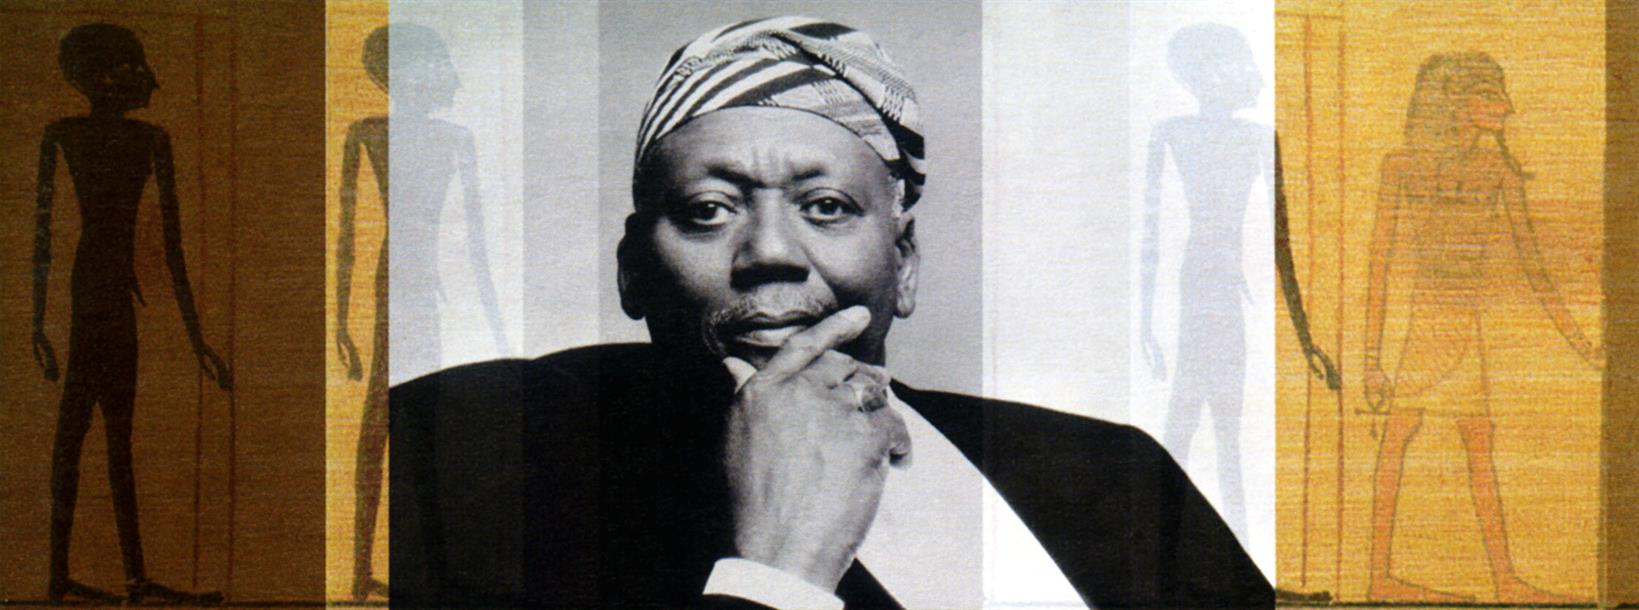 Portrait photo of Randy Weston with his right hand on his chin.